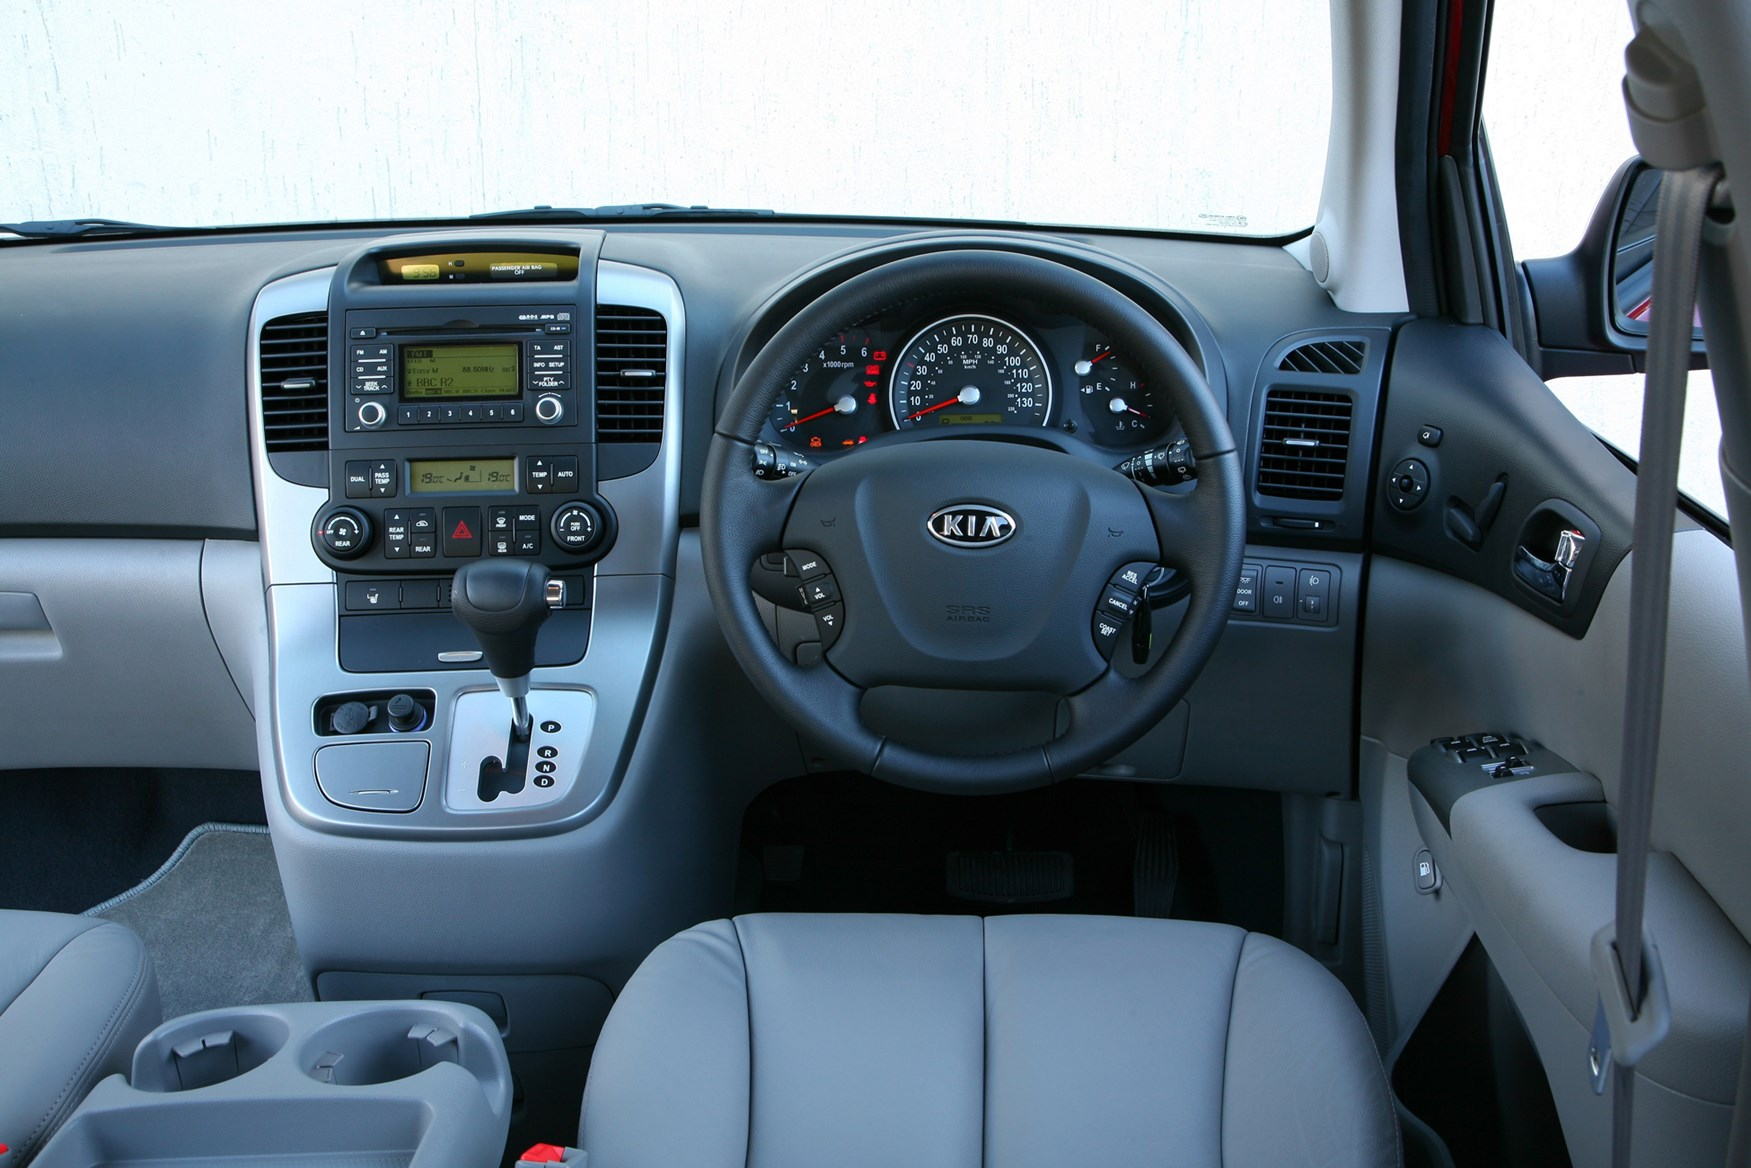 View all images of the kia sedona 06 12